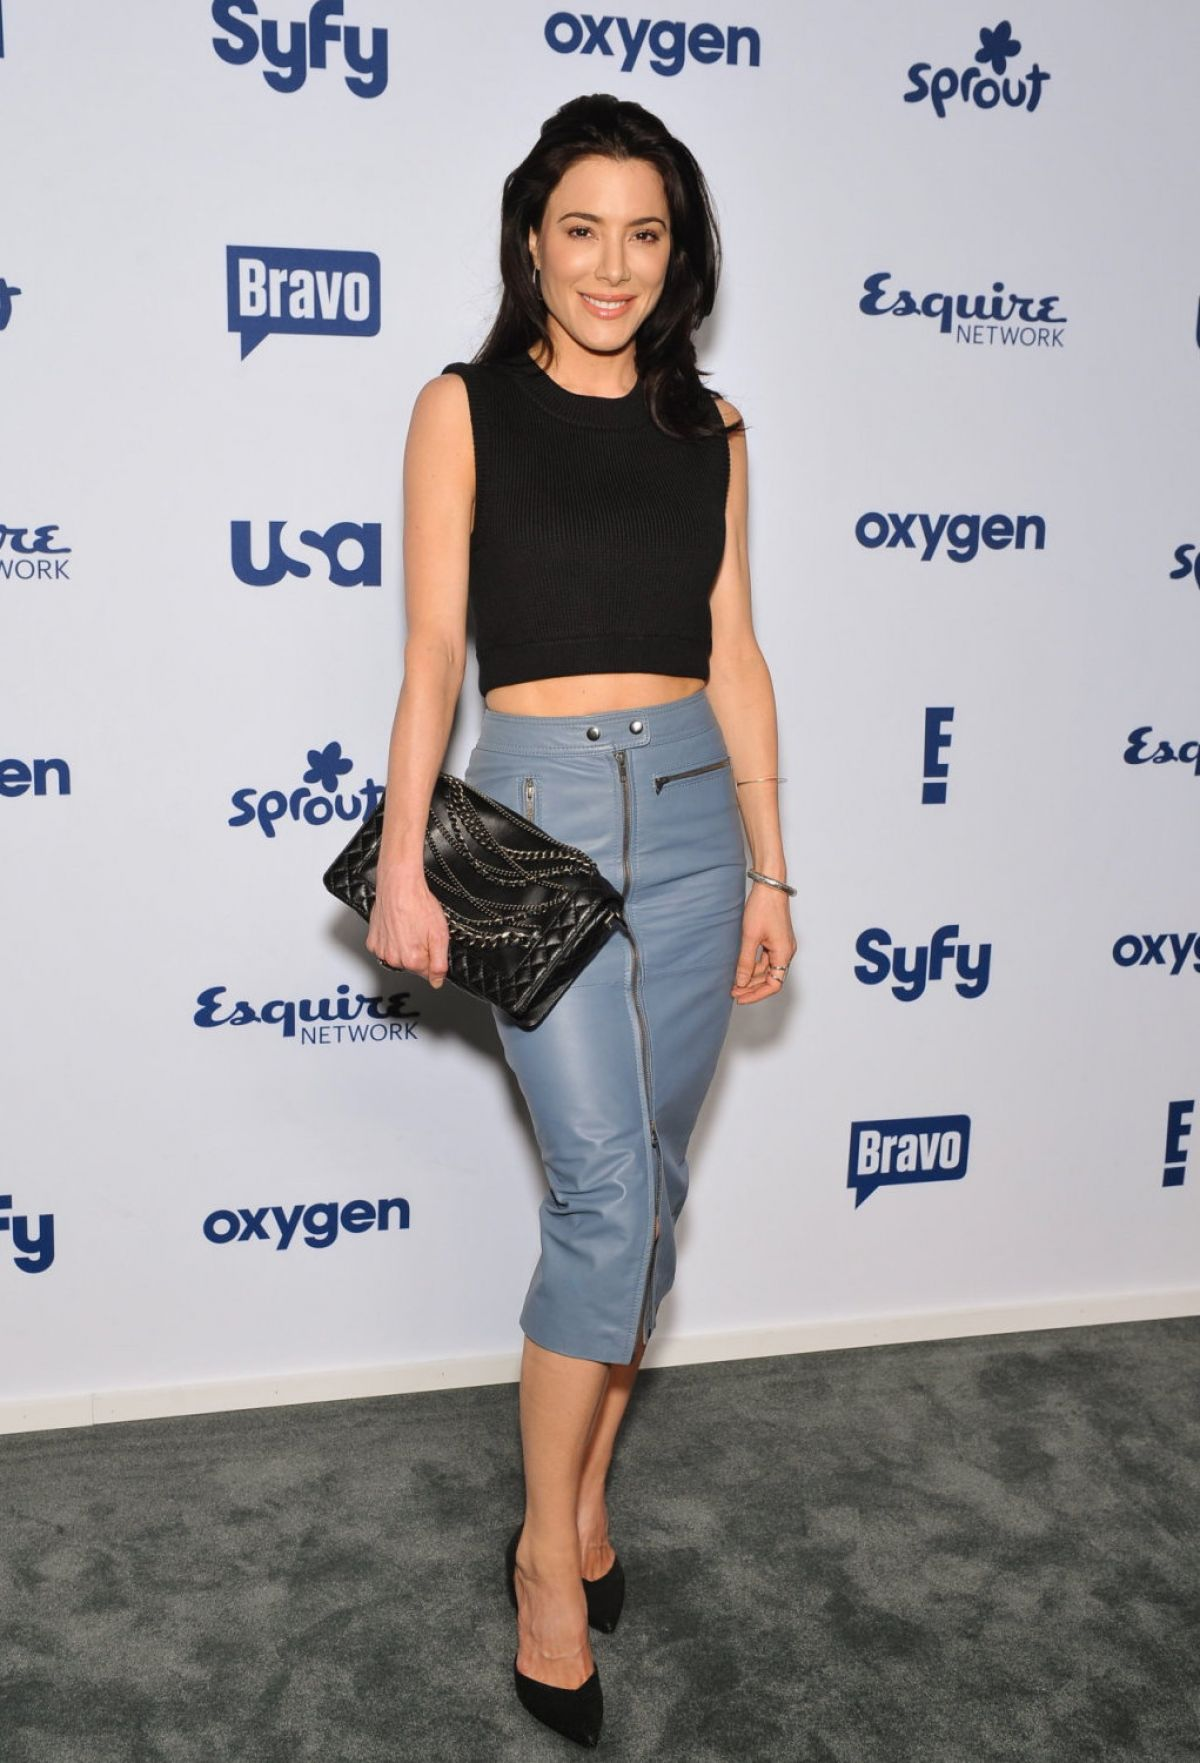 JAIME MURRAY at NBC/Universal Cable Entertainment Upfront Presentation in New York